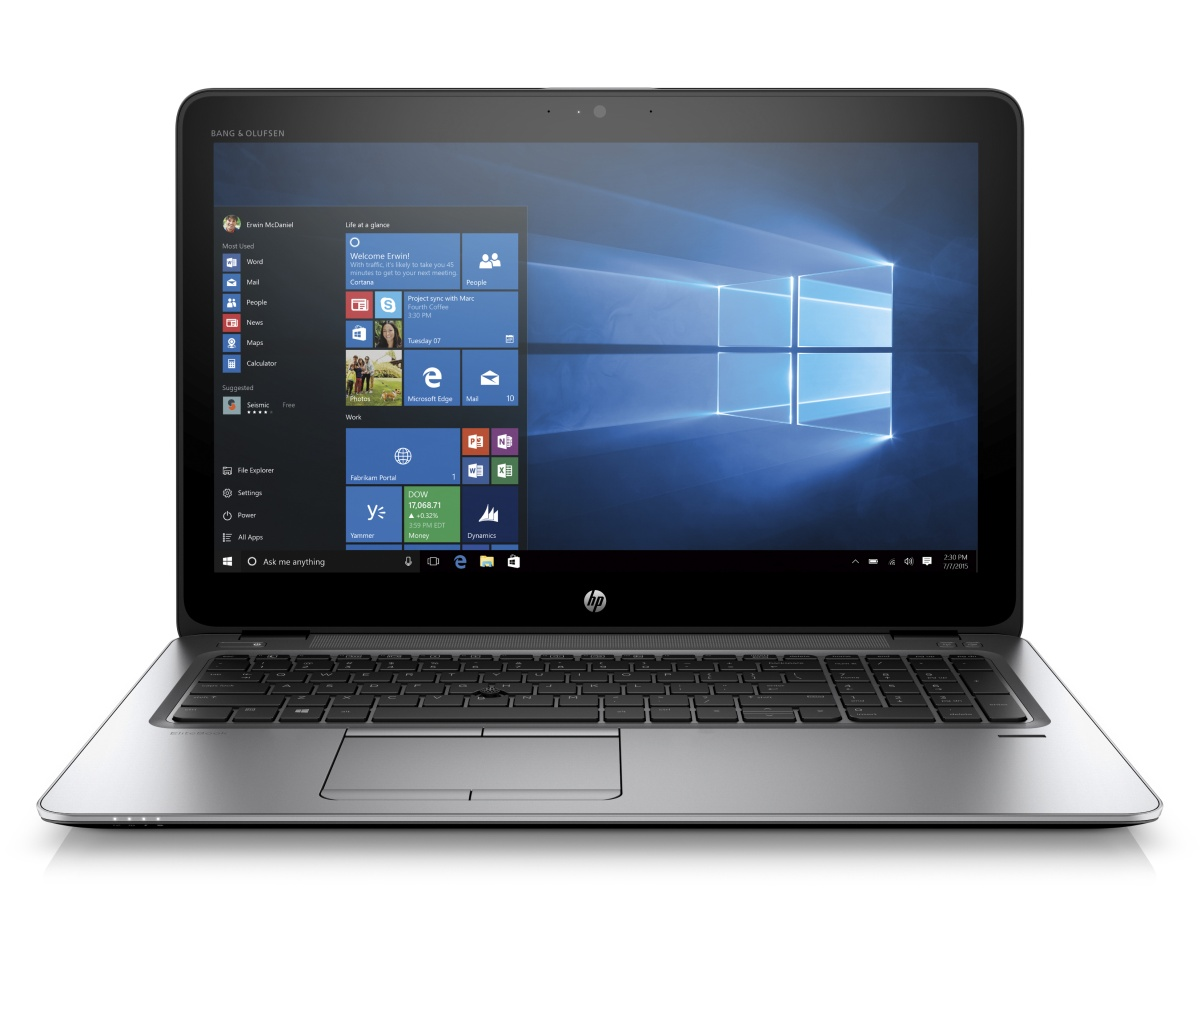 HP EliteBook 850 G3 i5-6200U/4GB/256GB SSD/15,6'' FHD/backlit keyb/Win 10 Pro downg